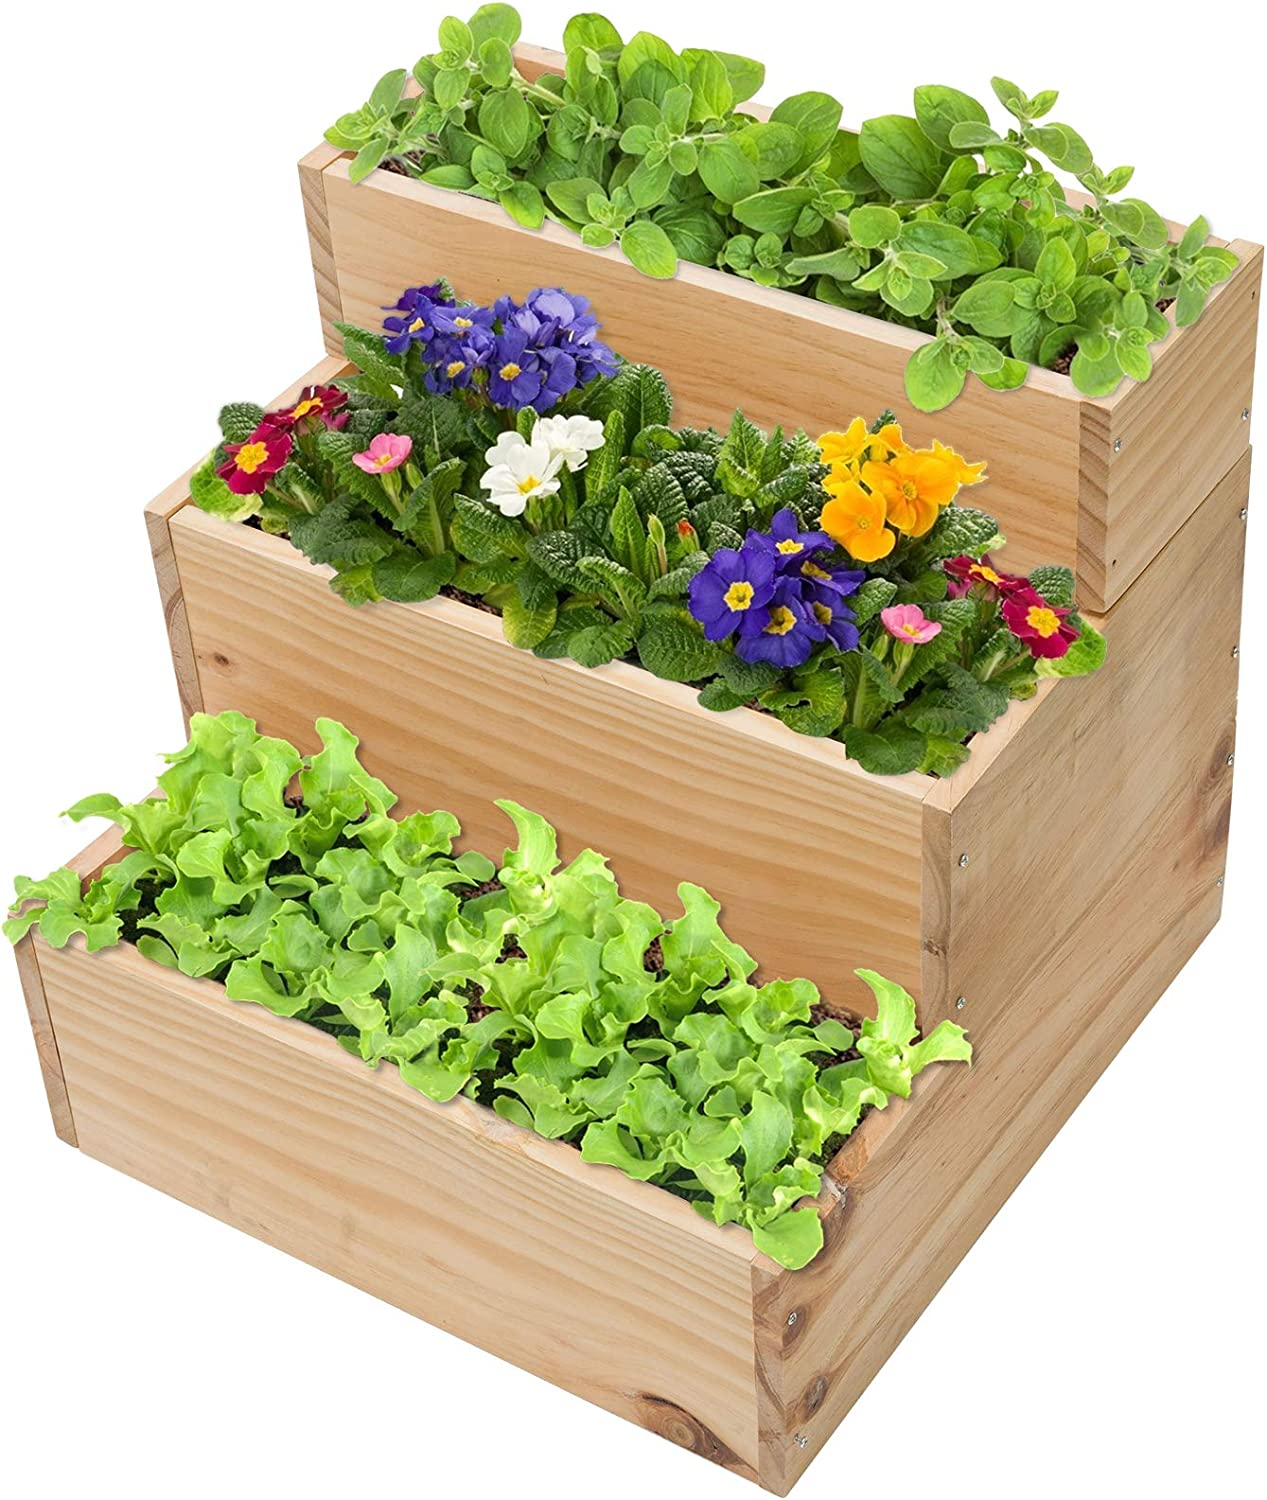 3 Tier Wooden Raised Garden Bed- 16 × 16 × 16.5 Inch Small Elevated Wooden Garden Bed Planter Box Pine Wood Garden Plant Container with Tool Set for Growing Vegetable Flower Herb Indoors Outdoors